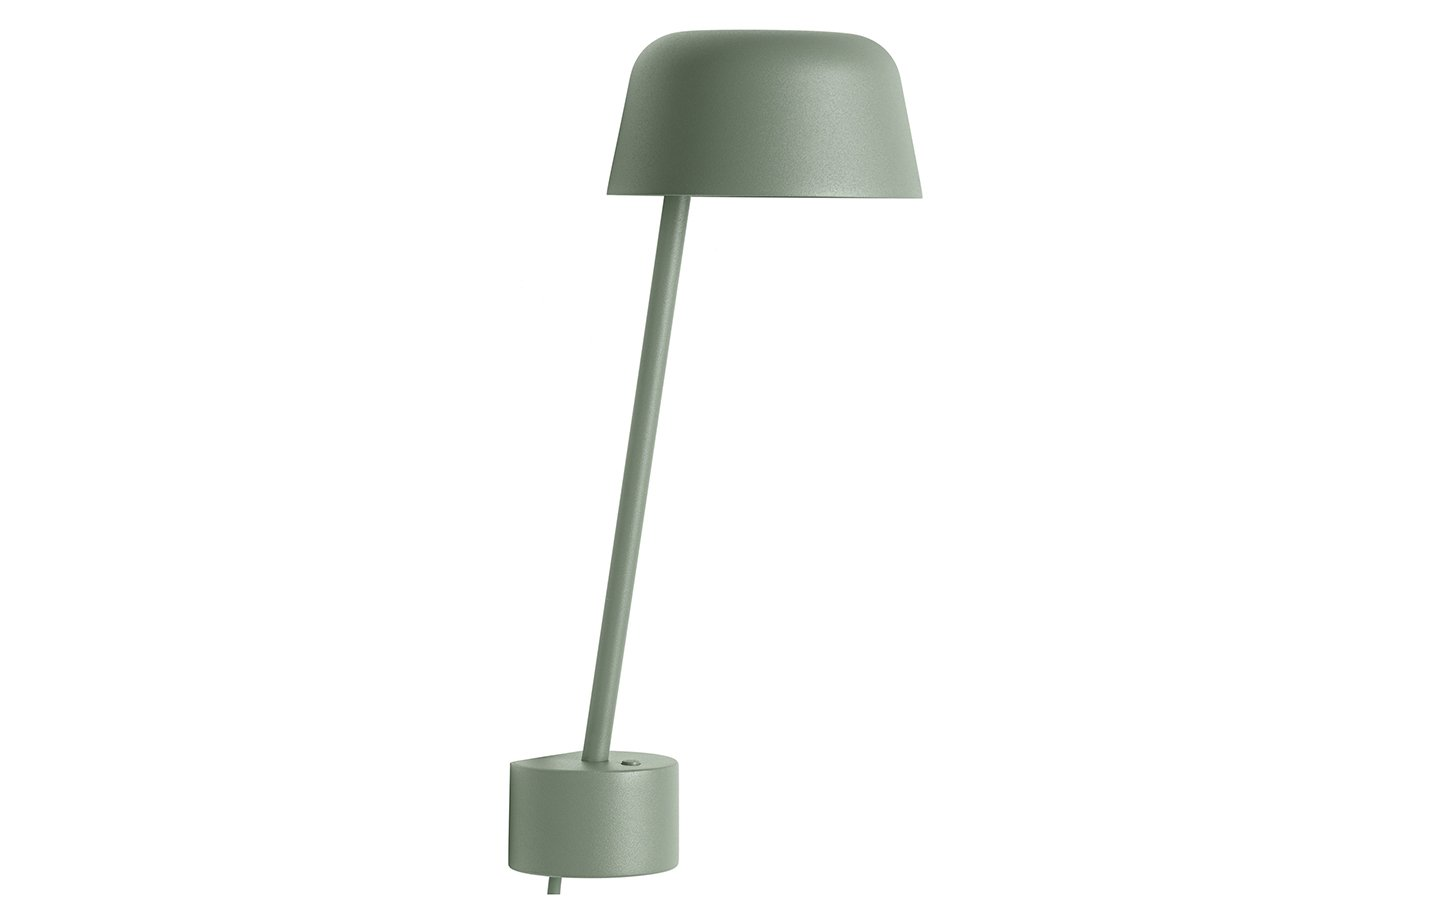 Wall Lamps Uae : Lean Wall Lamp Fabiia - Dubai, UAE